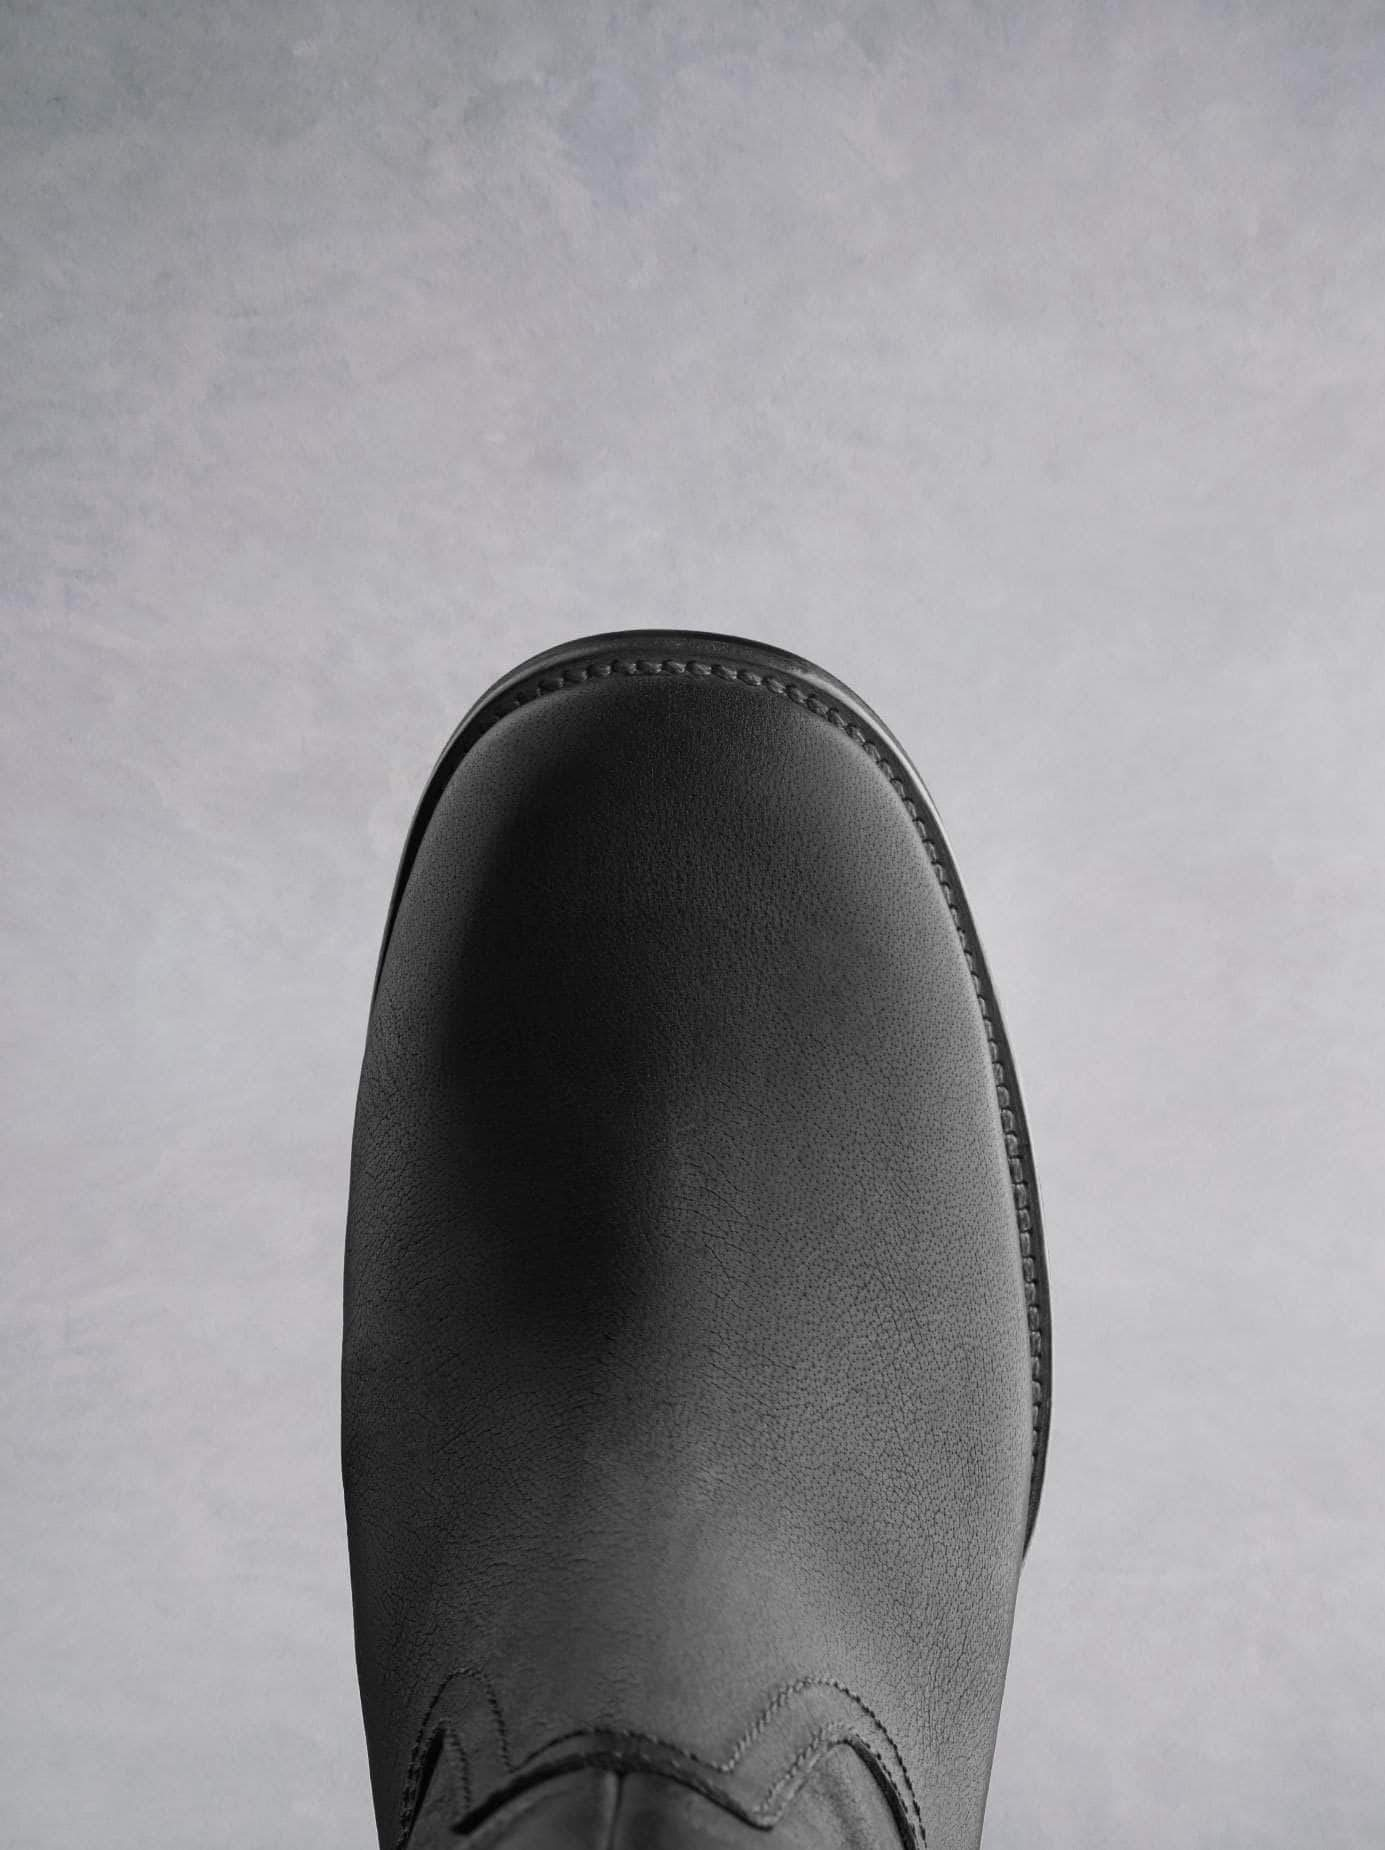 Brampton has a comfortable round toe and sturdy sole.